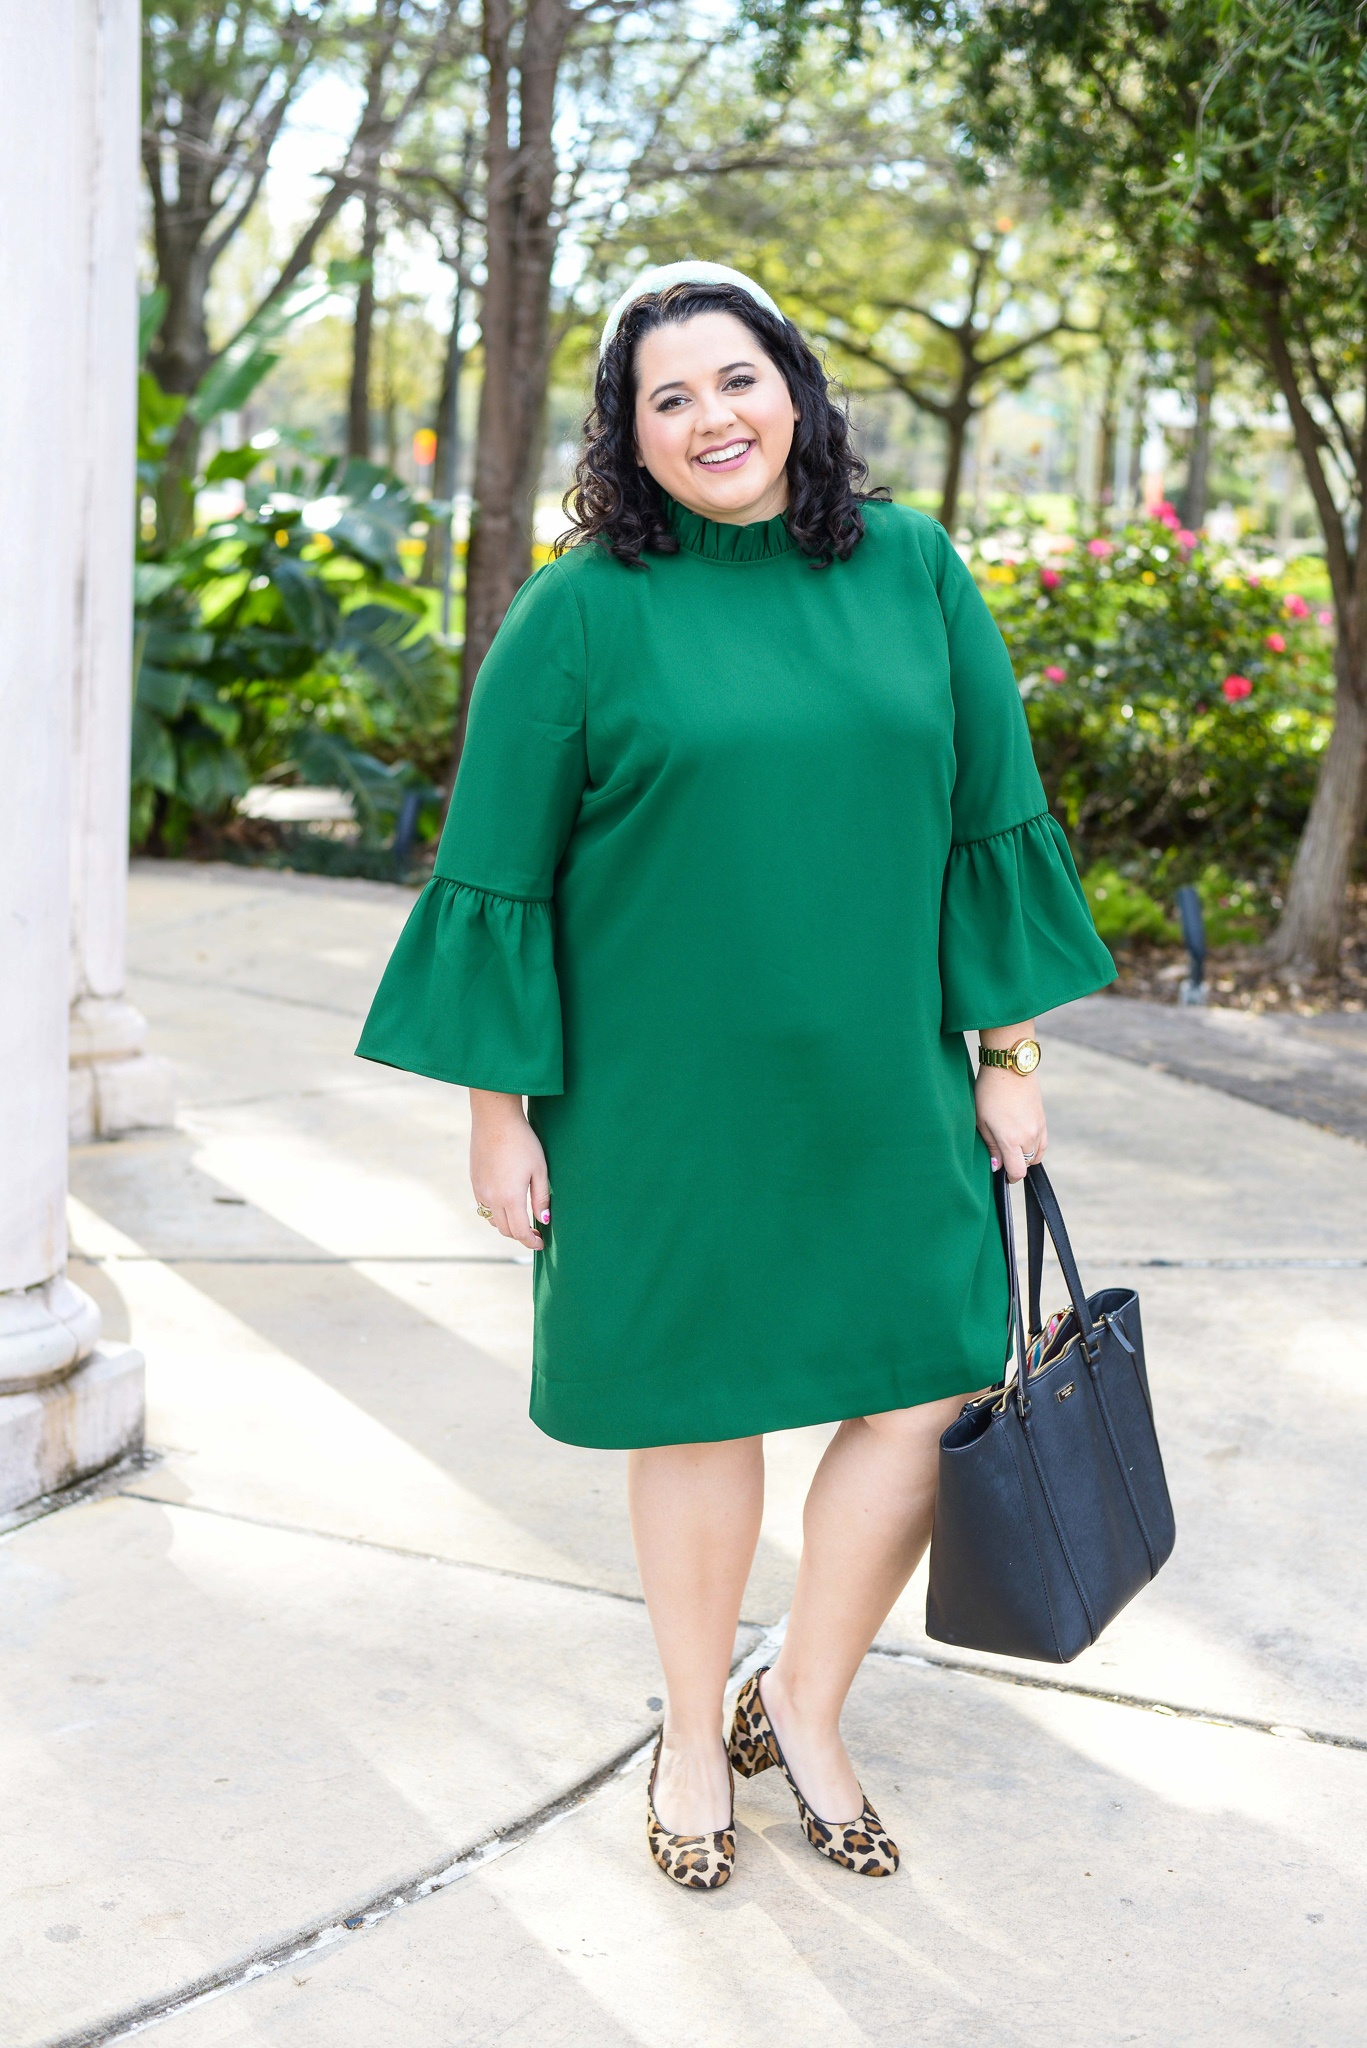 What to wear to the office for St. Patrick's Day as a plus size woman.